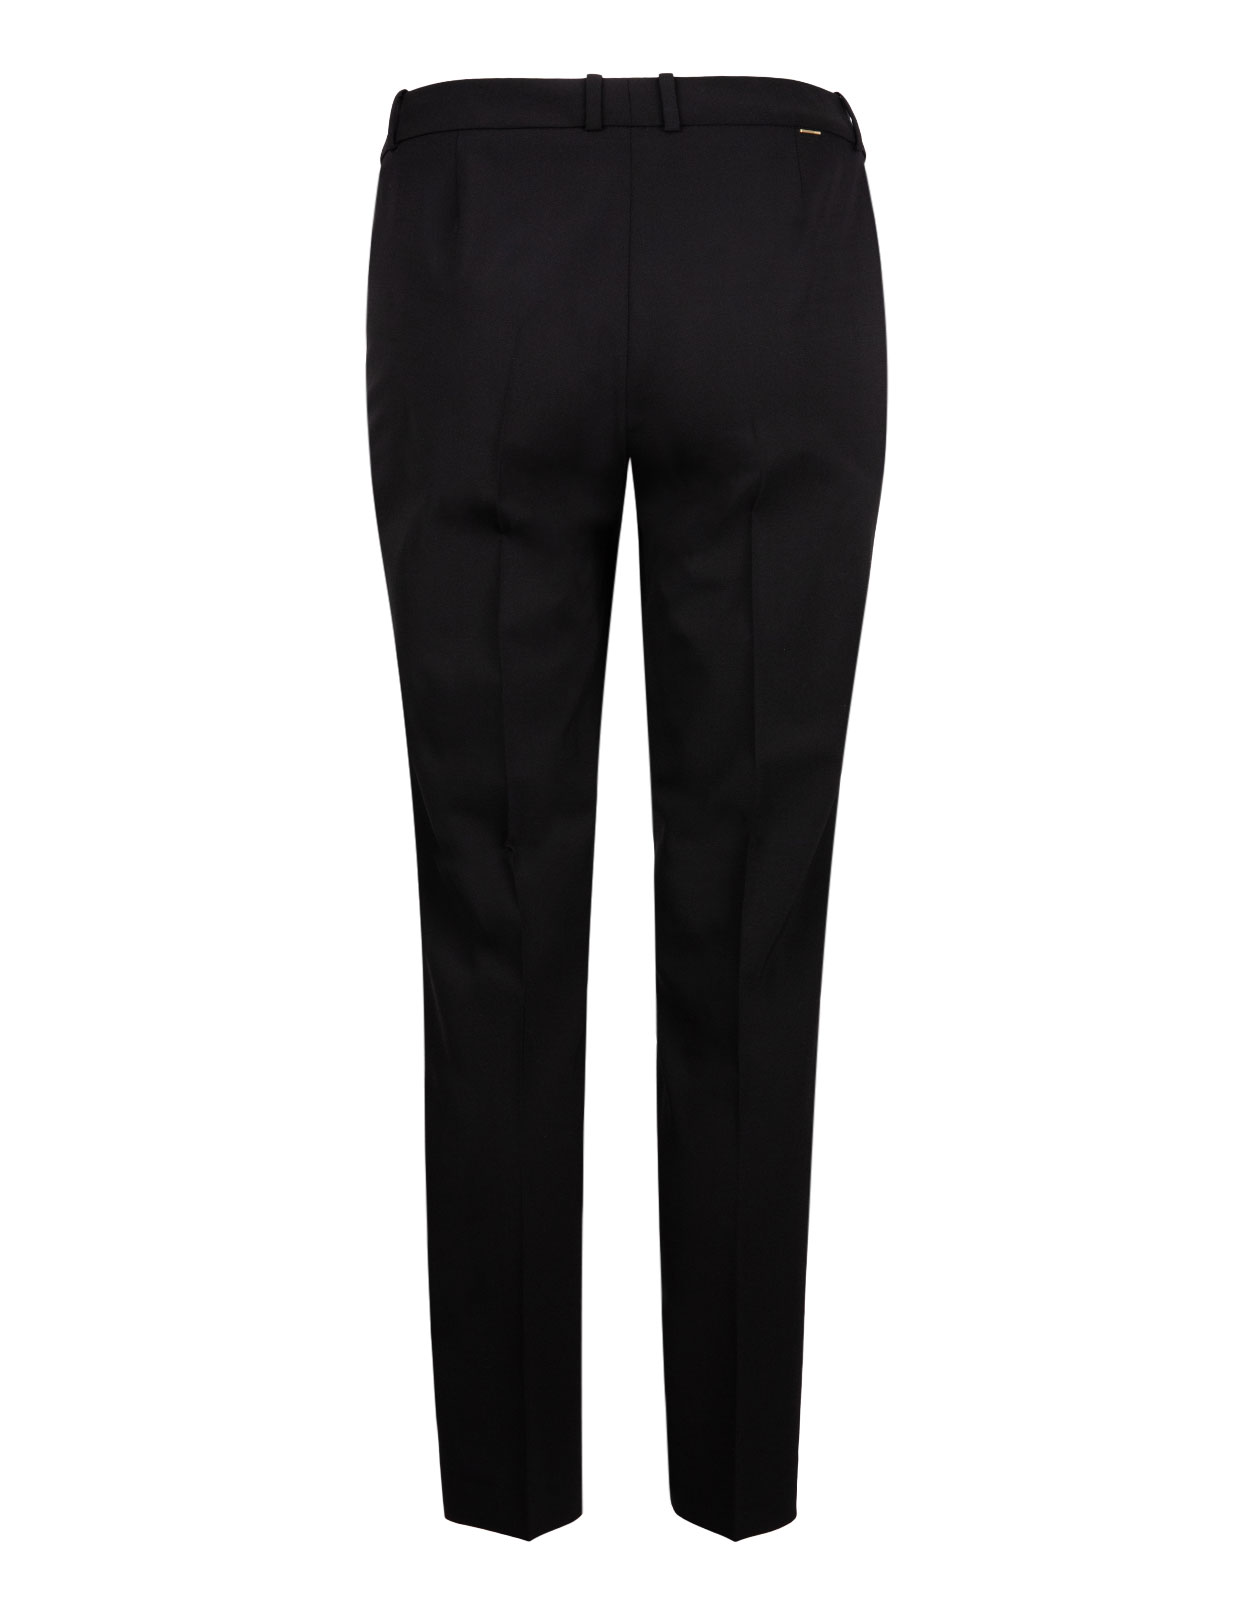 Trouser Tiluna cropped Black